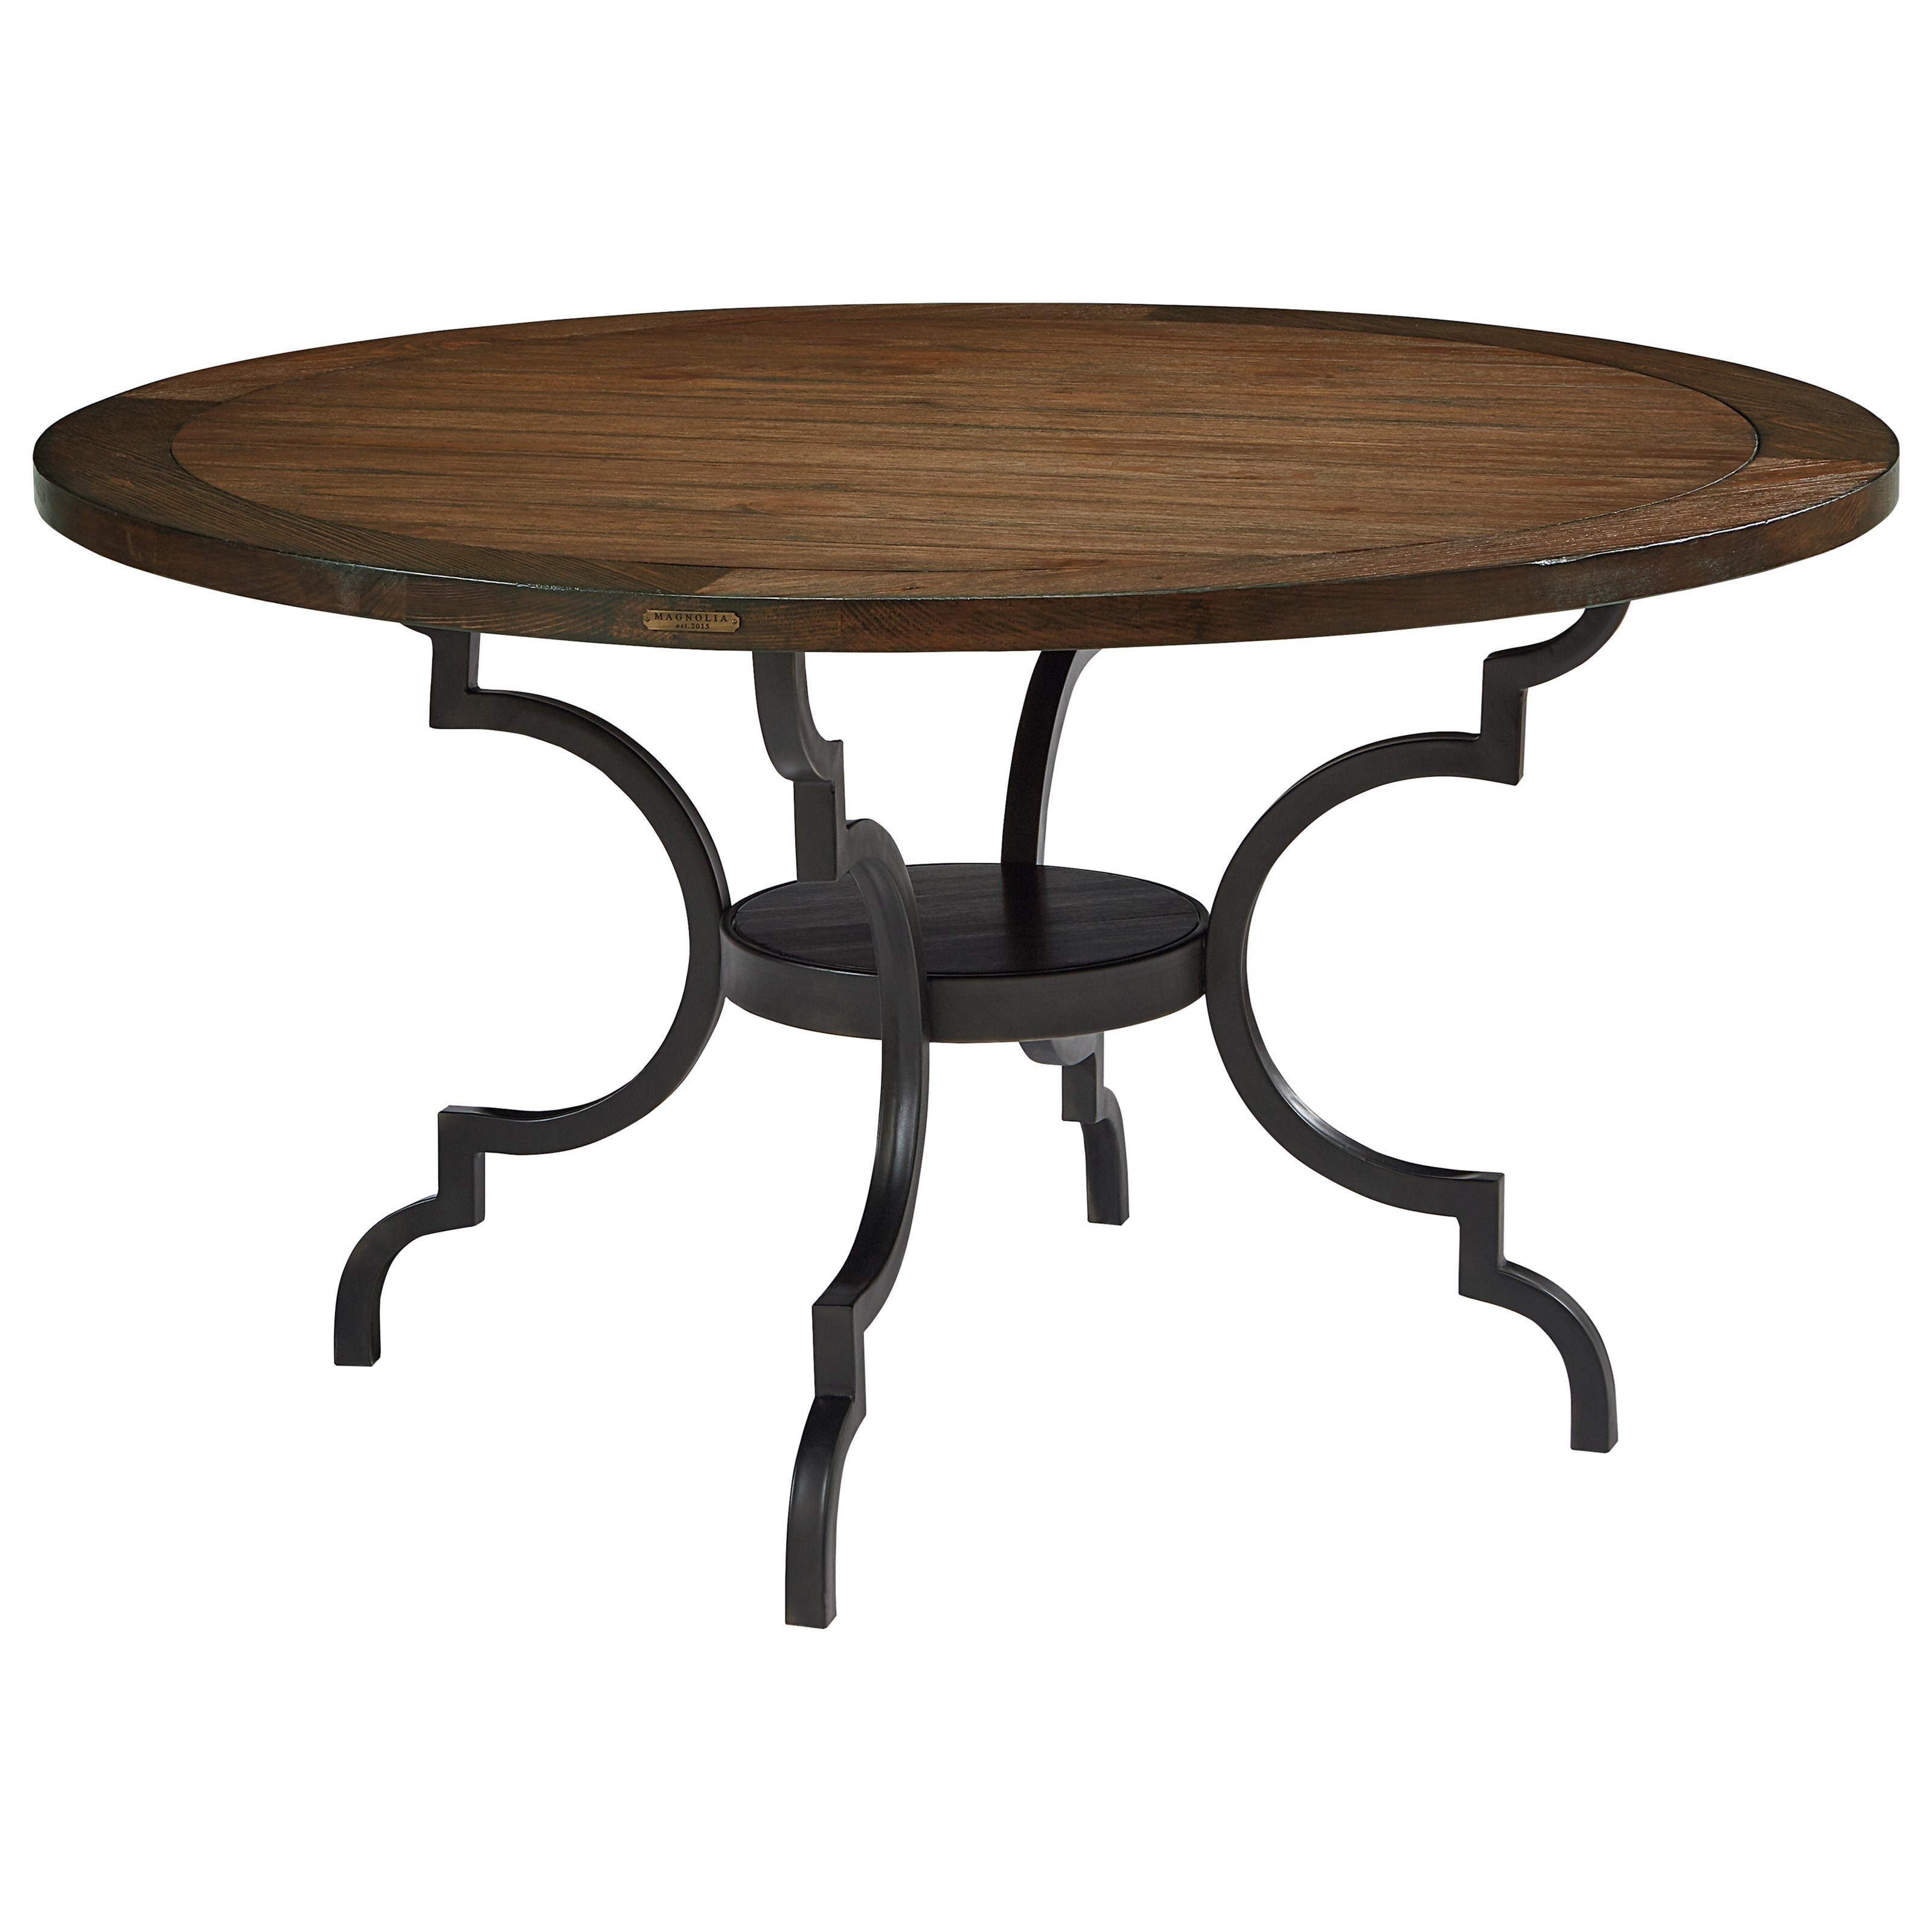 breakfast table wood top w metal base by magnolia home by